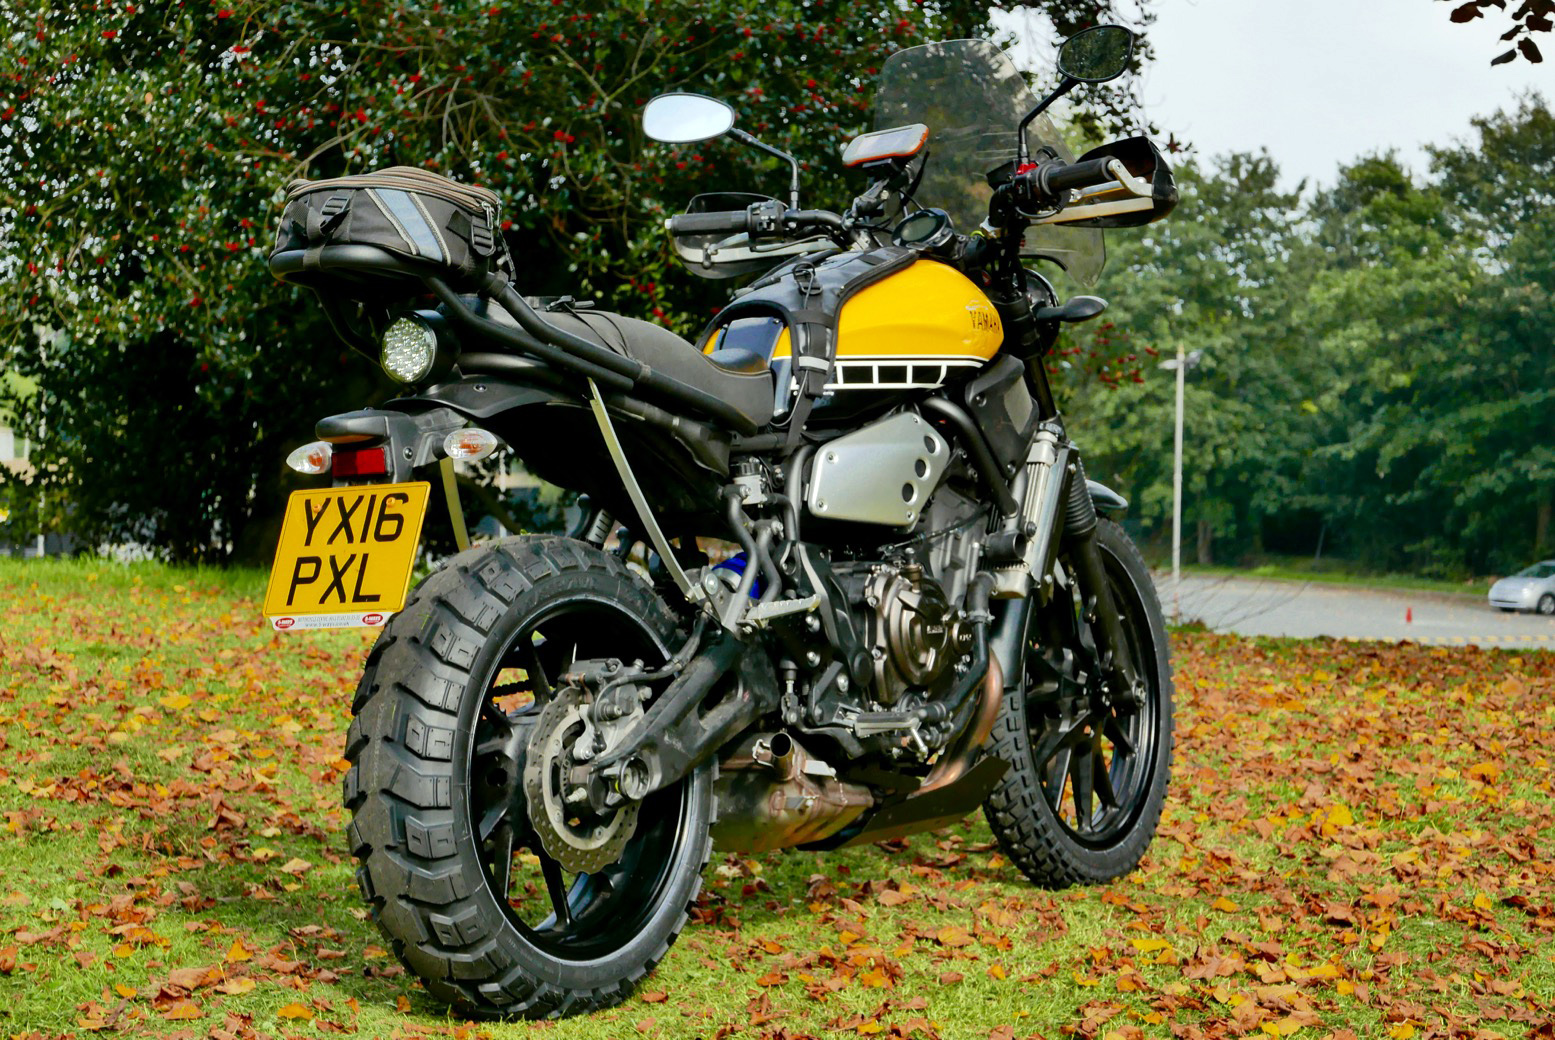 Xsr 700 Scrambler Final Mods Moded Suzuki Bikes My Xscrambler Sets Off In A Month For Morocco And Bar Some Luggage Is Ready To Go Dont Think Ive Ever Had Bike So Far Advance